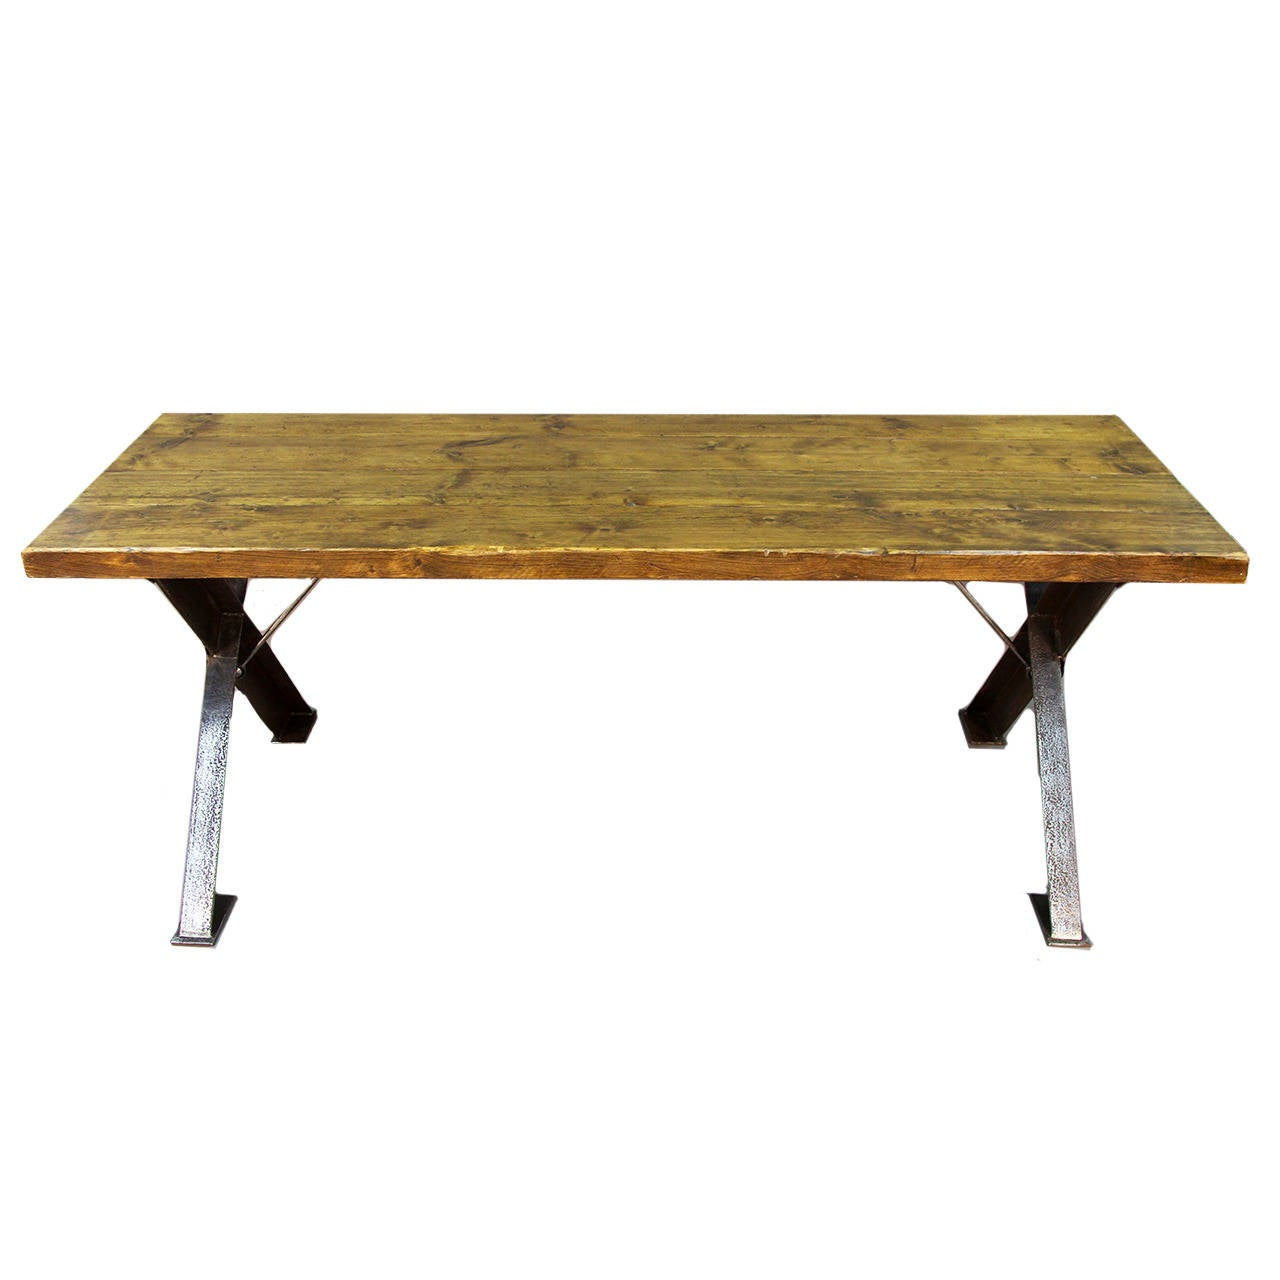 Wood English X-Frame Polished Steel Base Table For Sale